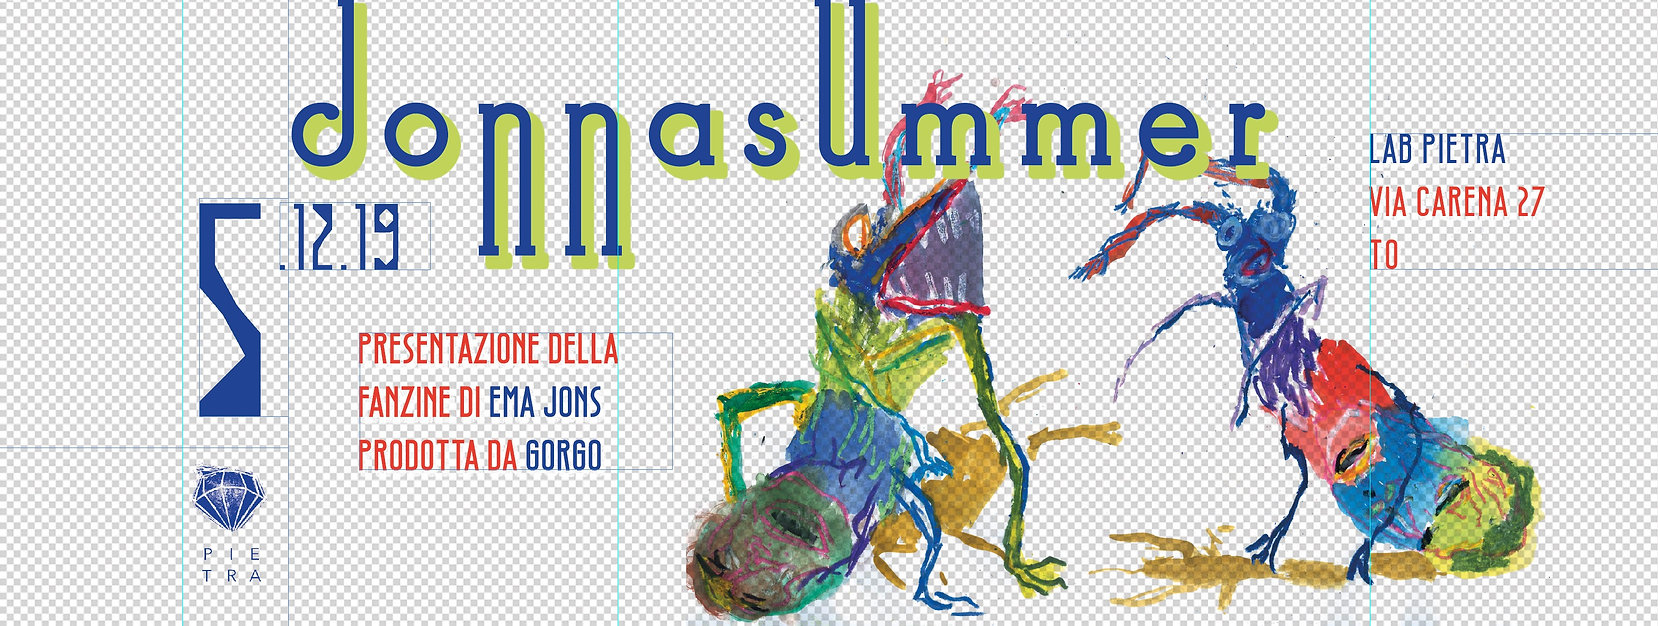 "The event cover banner by Kamimani: graphic ideas started from Ema Jons + GORGO ""Donna Summer"" street fanzine, illustrated by Ema Jons, presented by Lab Pietra and introduced by Guerrila Spam. This has been the last art event of 2019 @LabPietra. See you next year!"